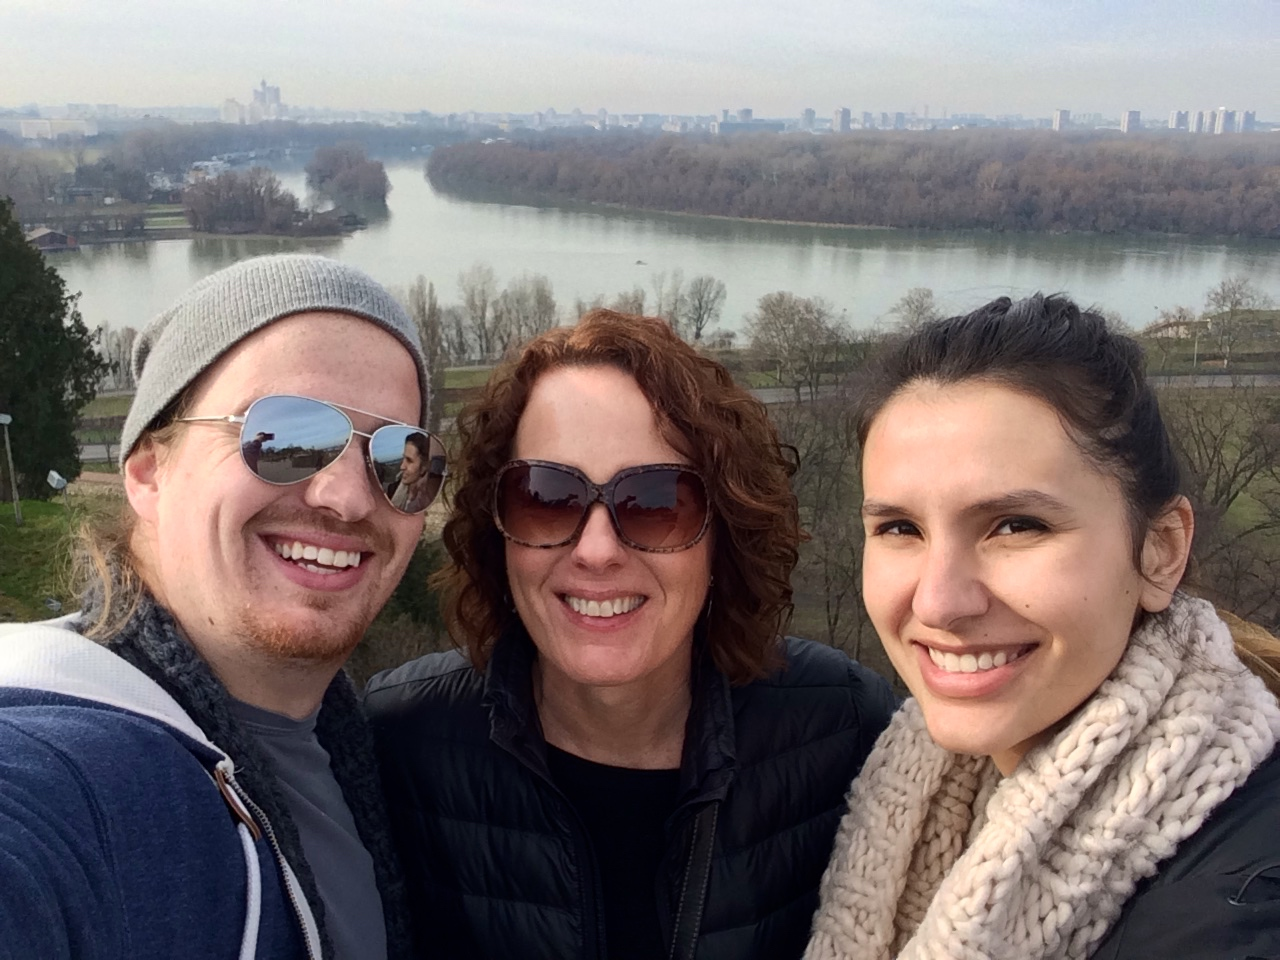 Me, Mom, and Moira. Selfie-time with the New Belgrade skyline in the background.